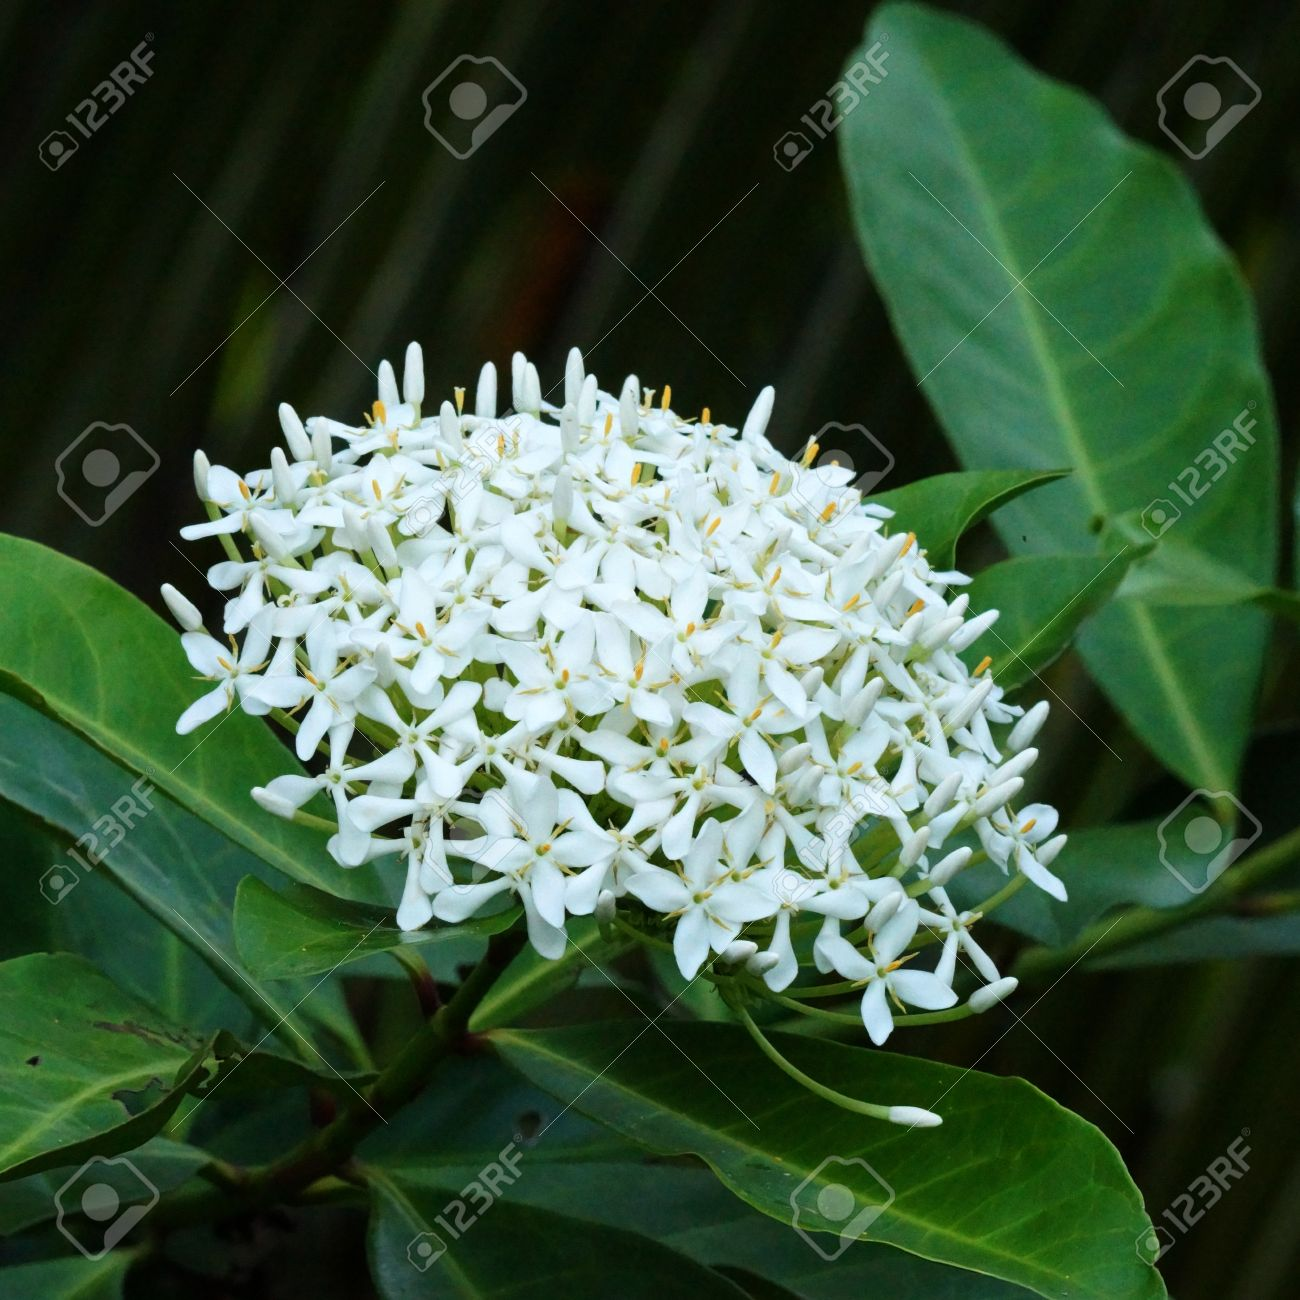 Very fragrant white flowers name siamese white ixora scientific very fragrant white flowers name siamese white ixora scientific name ixora finlaysoniana wall mightylinksfo